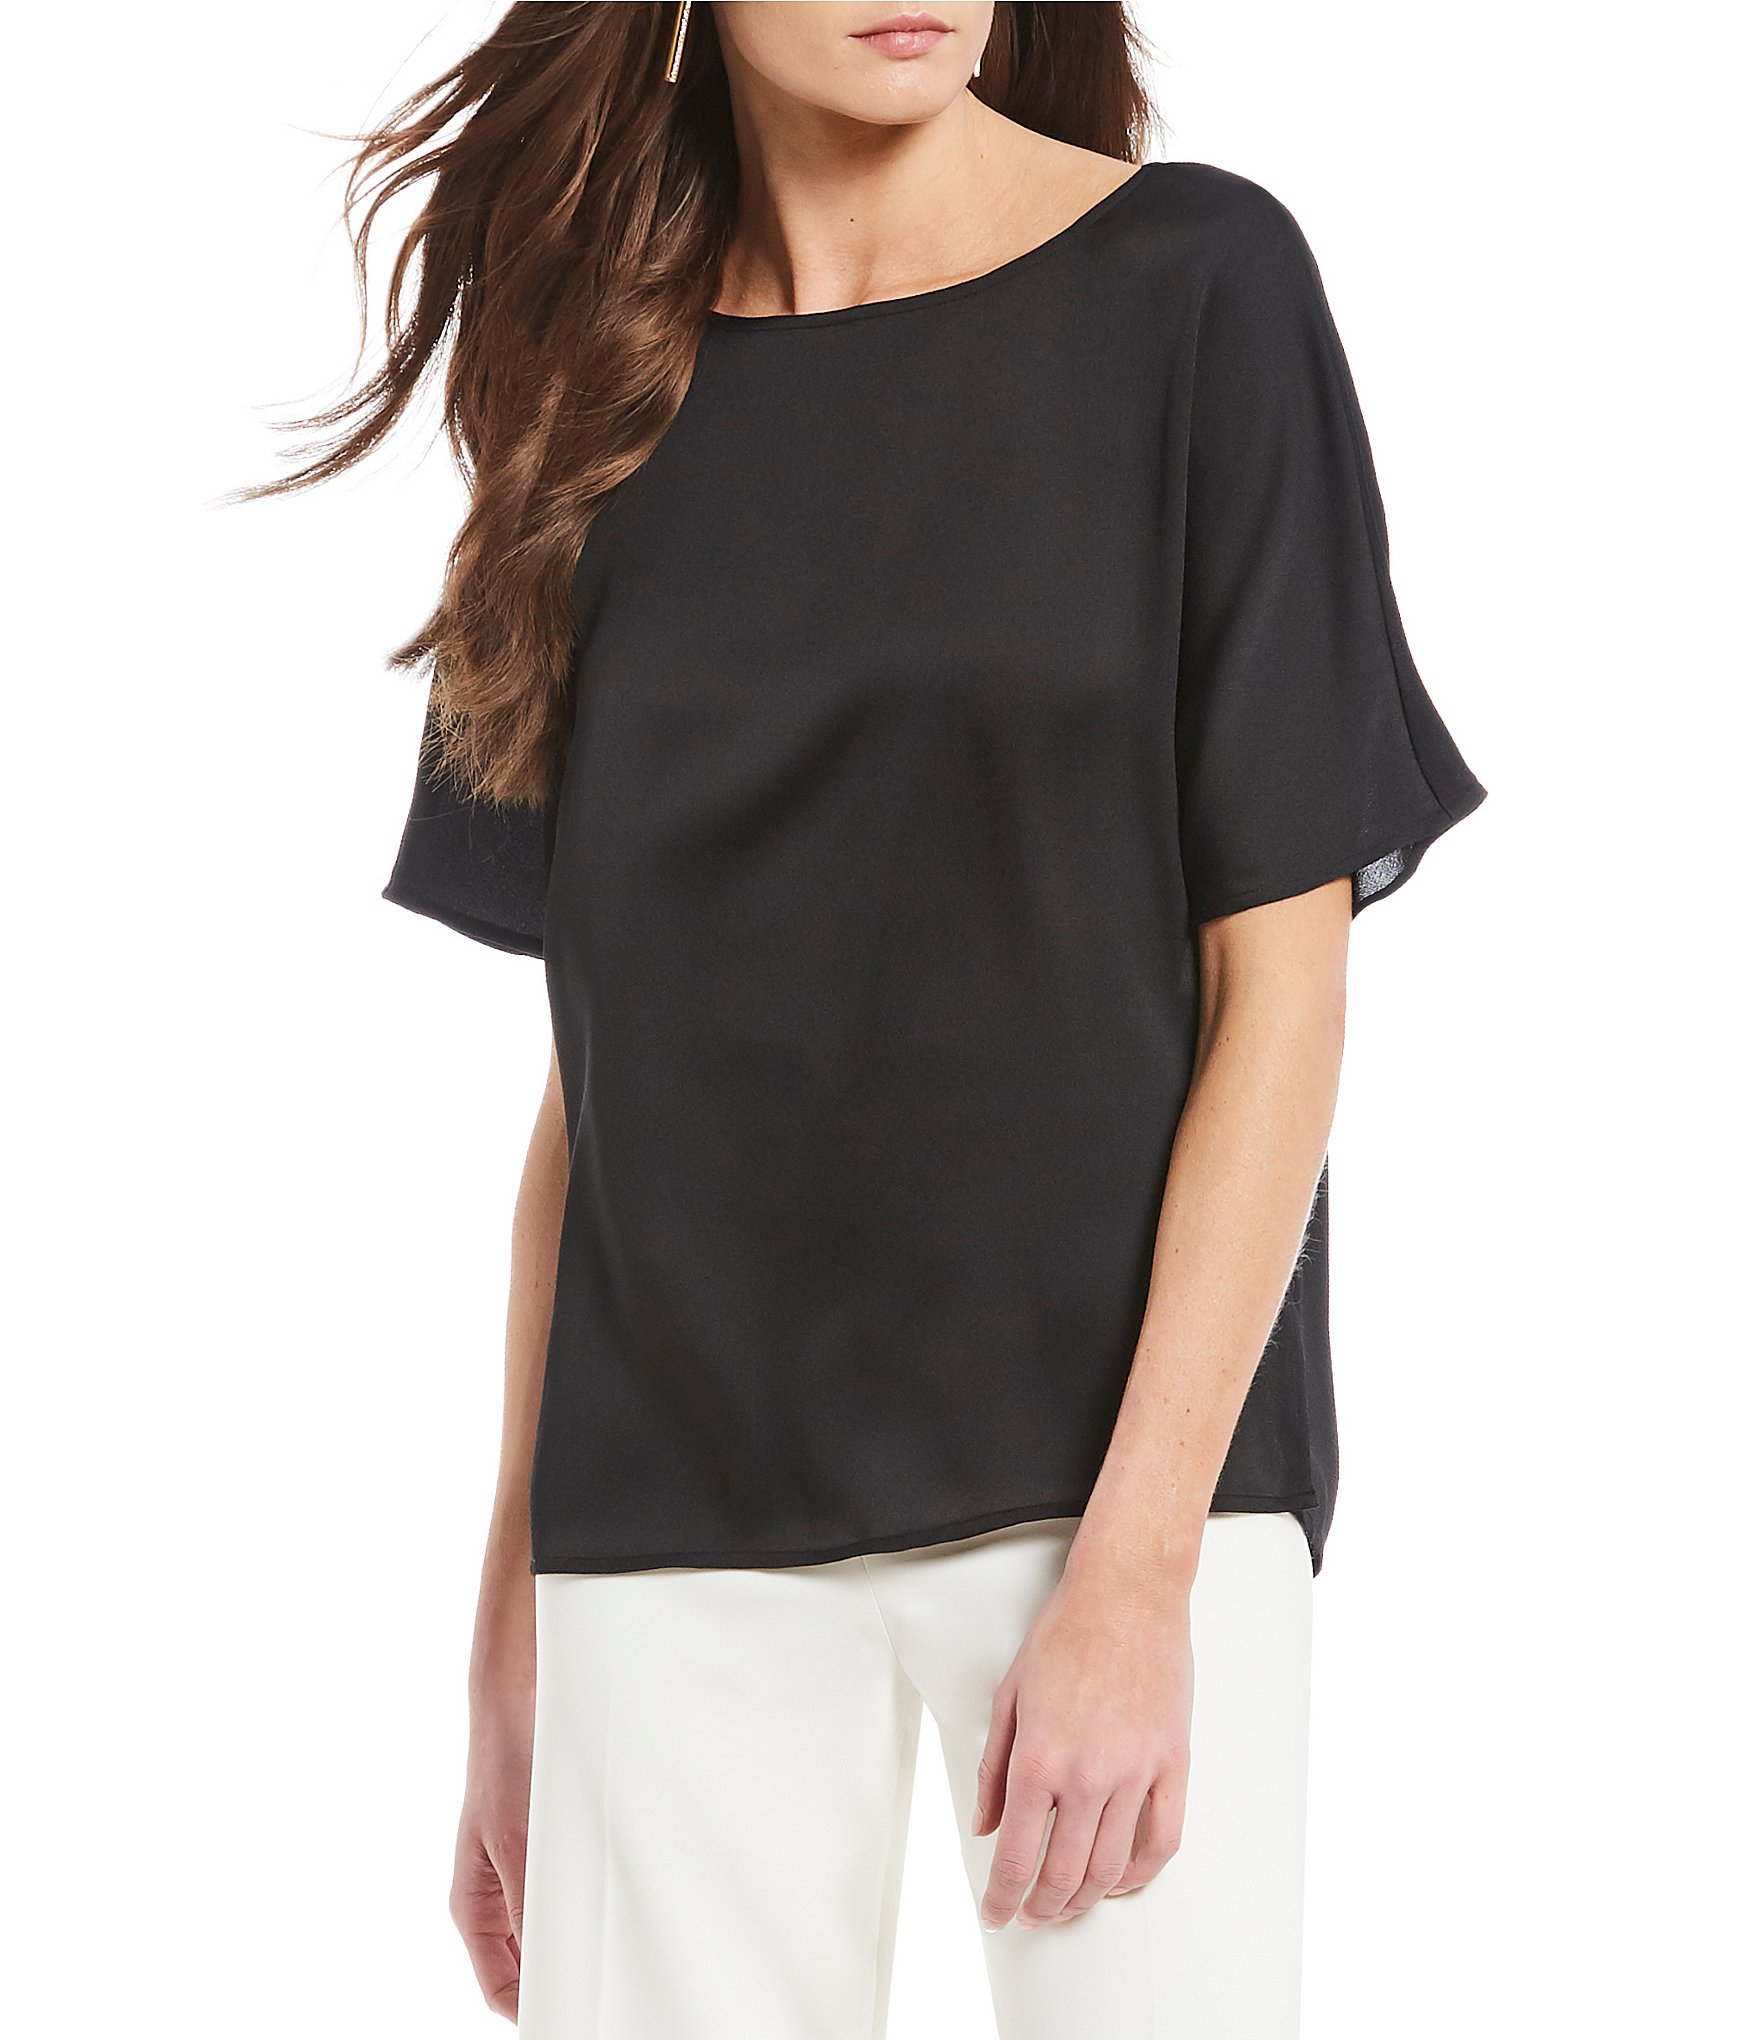 3b6e1417456 top vince camuto  Women s Clothing   Apparel